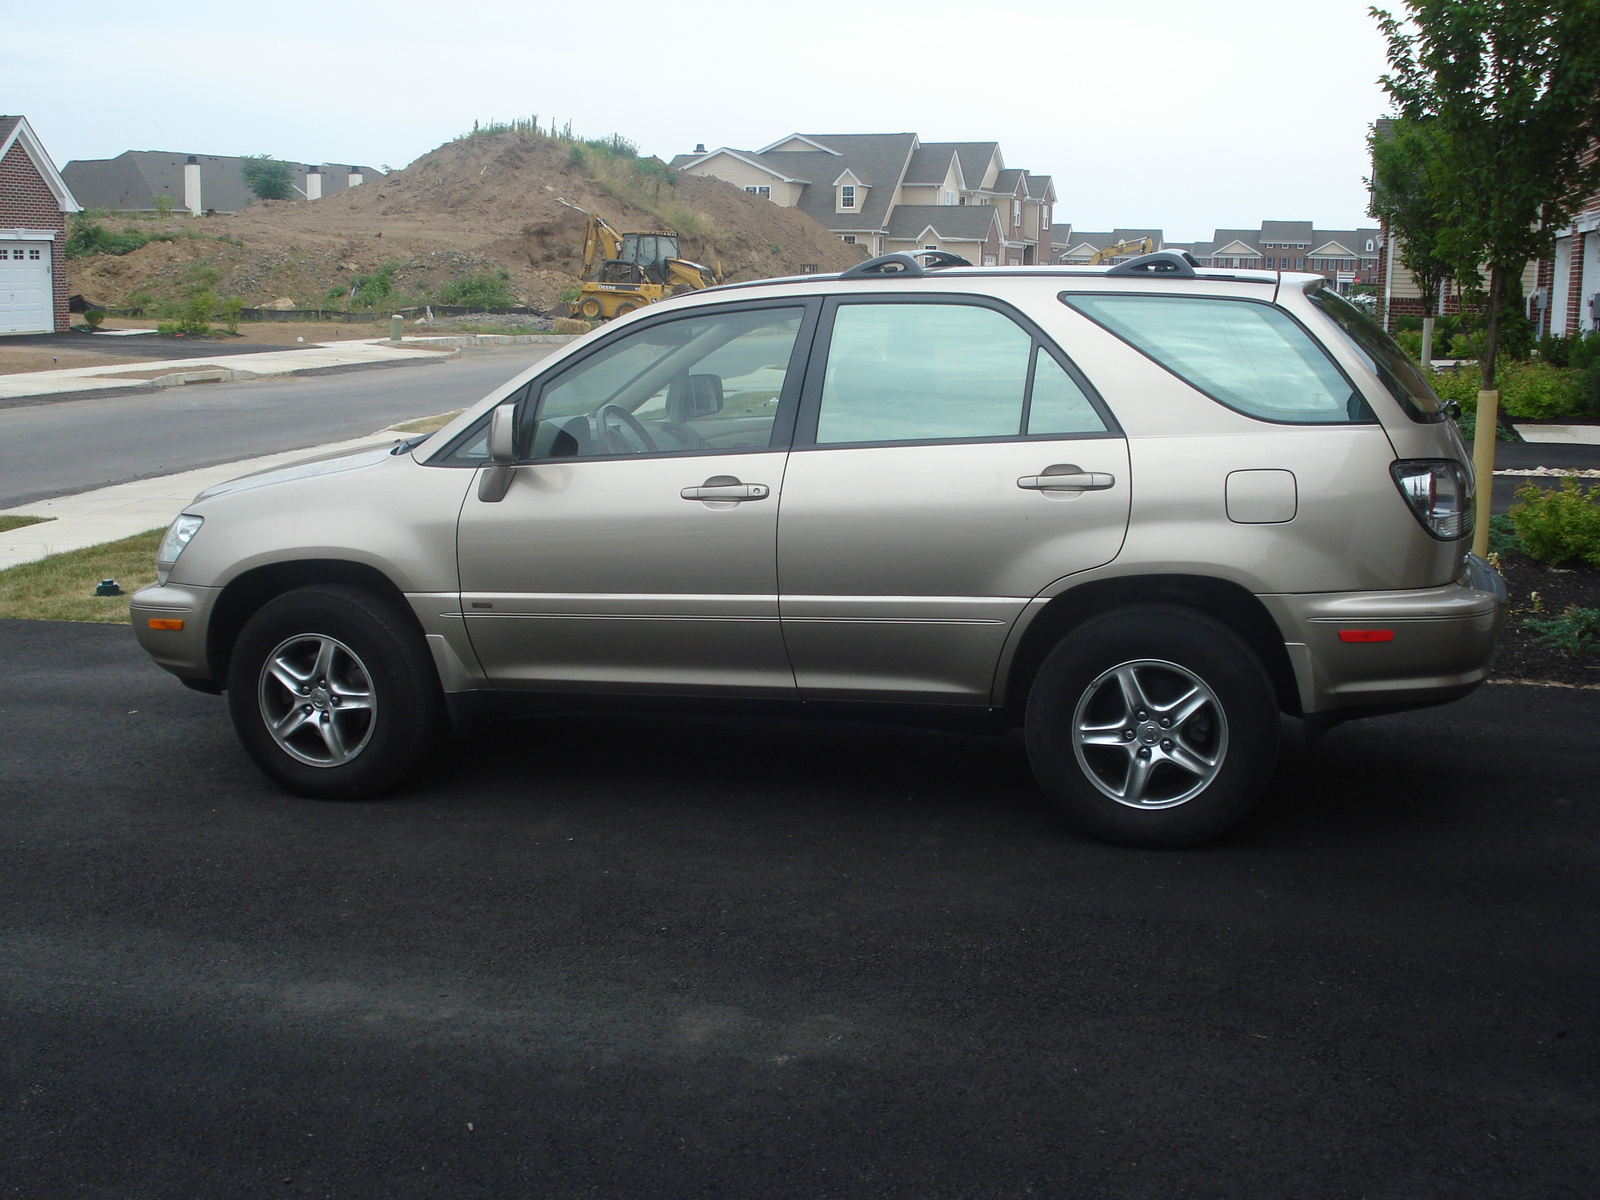 Picture of 2002 Lexus RX 300